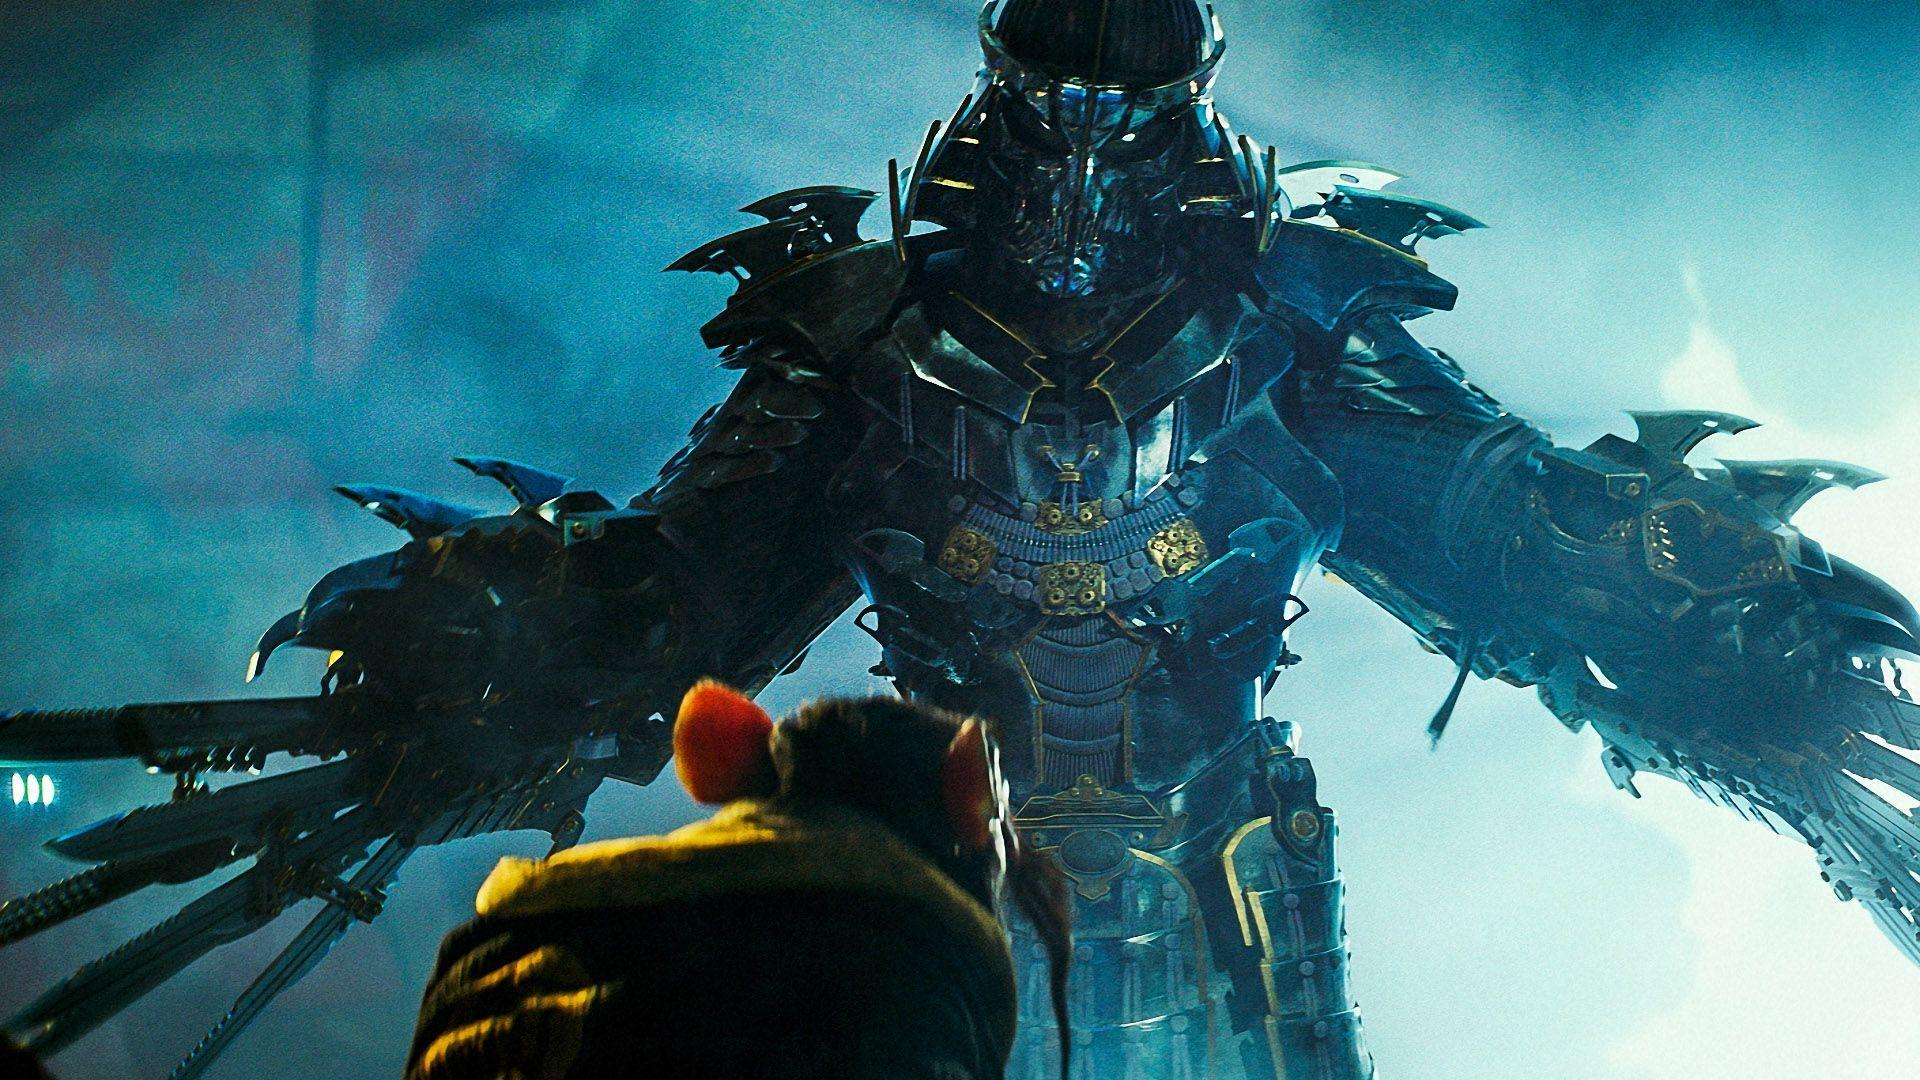 Teenage Mutant Ninja Turtles 2014 Movie Review TMNT The Shredder